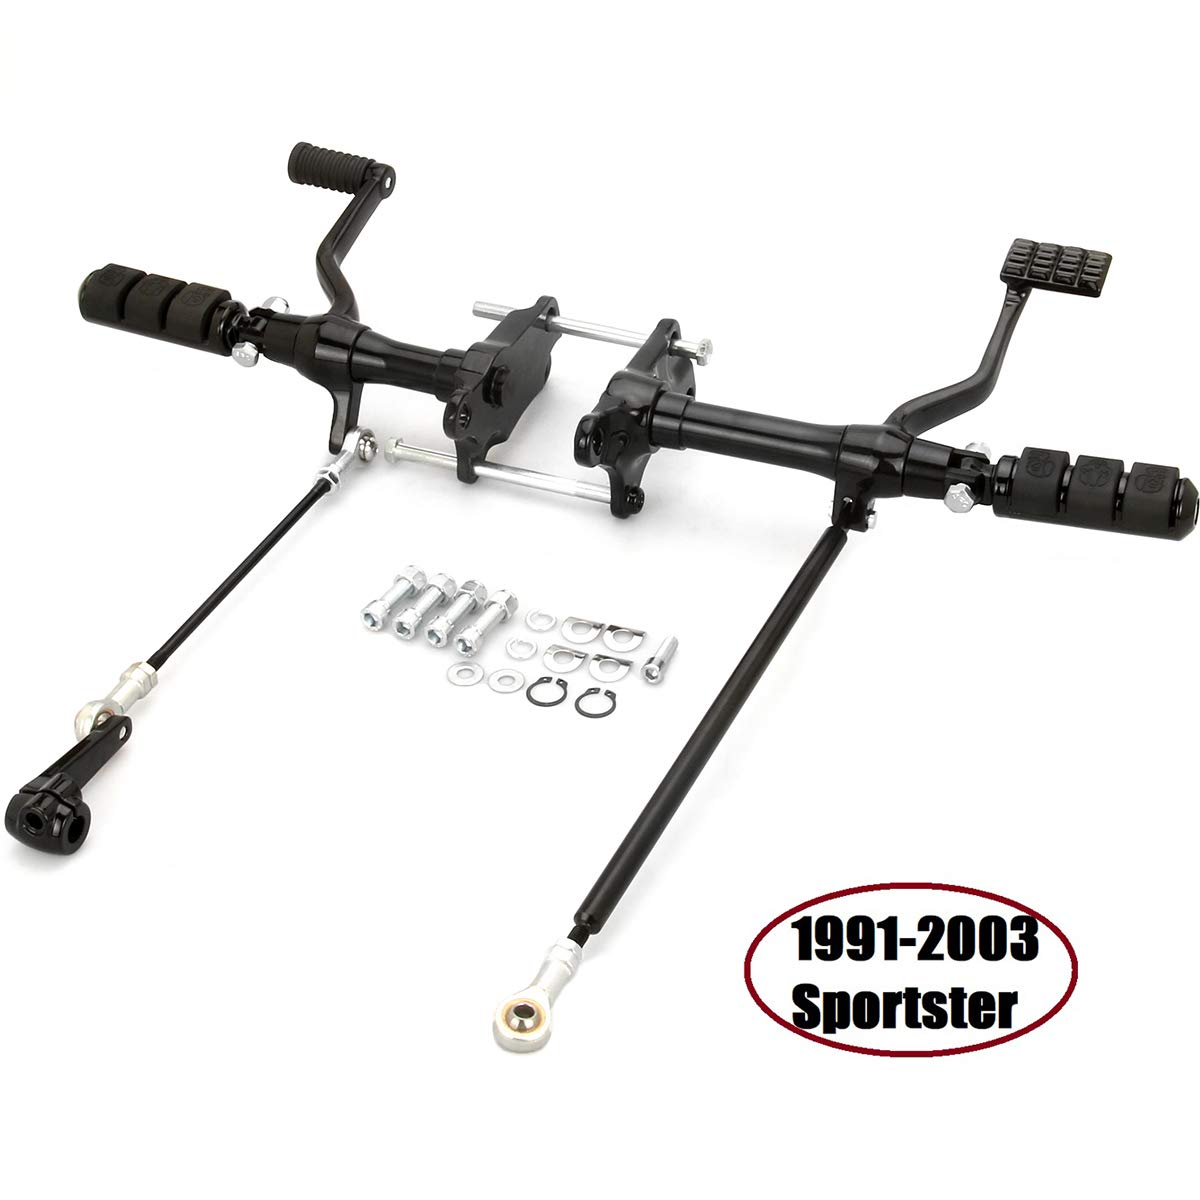 Black Sportster Forward Controls harley Foot Pegs shift Linkages rod For Harley Sportster 883 1200 1991-2003 by HAPPY-MOTOR